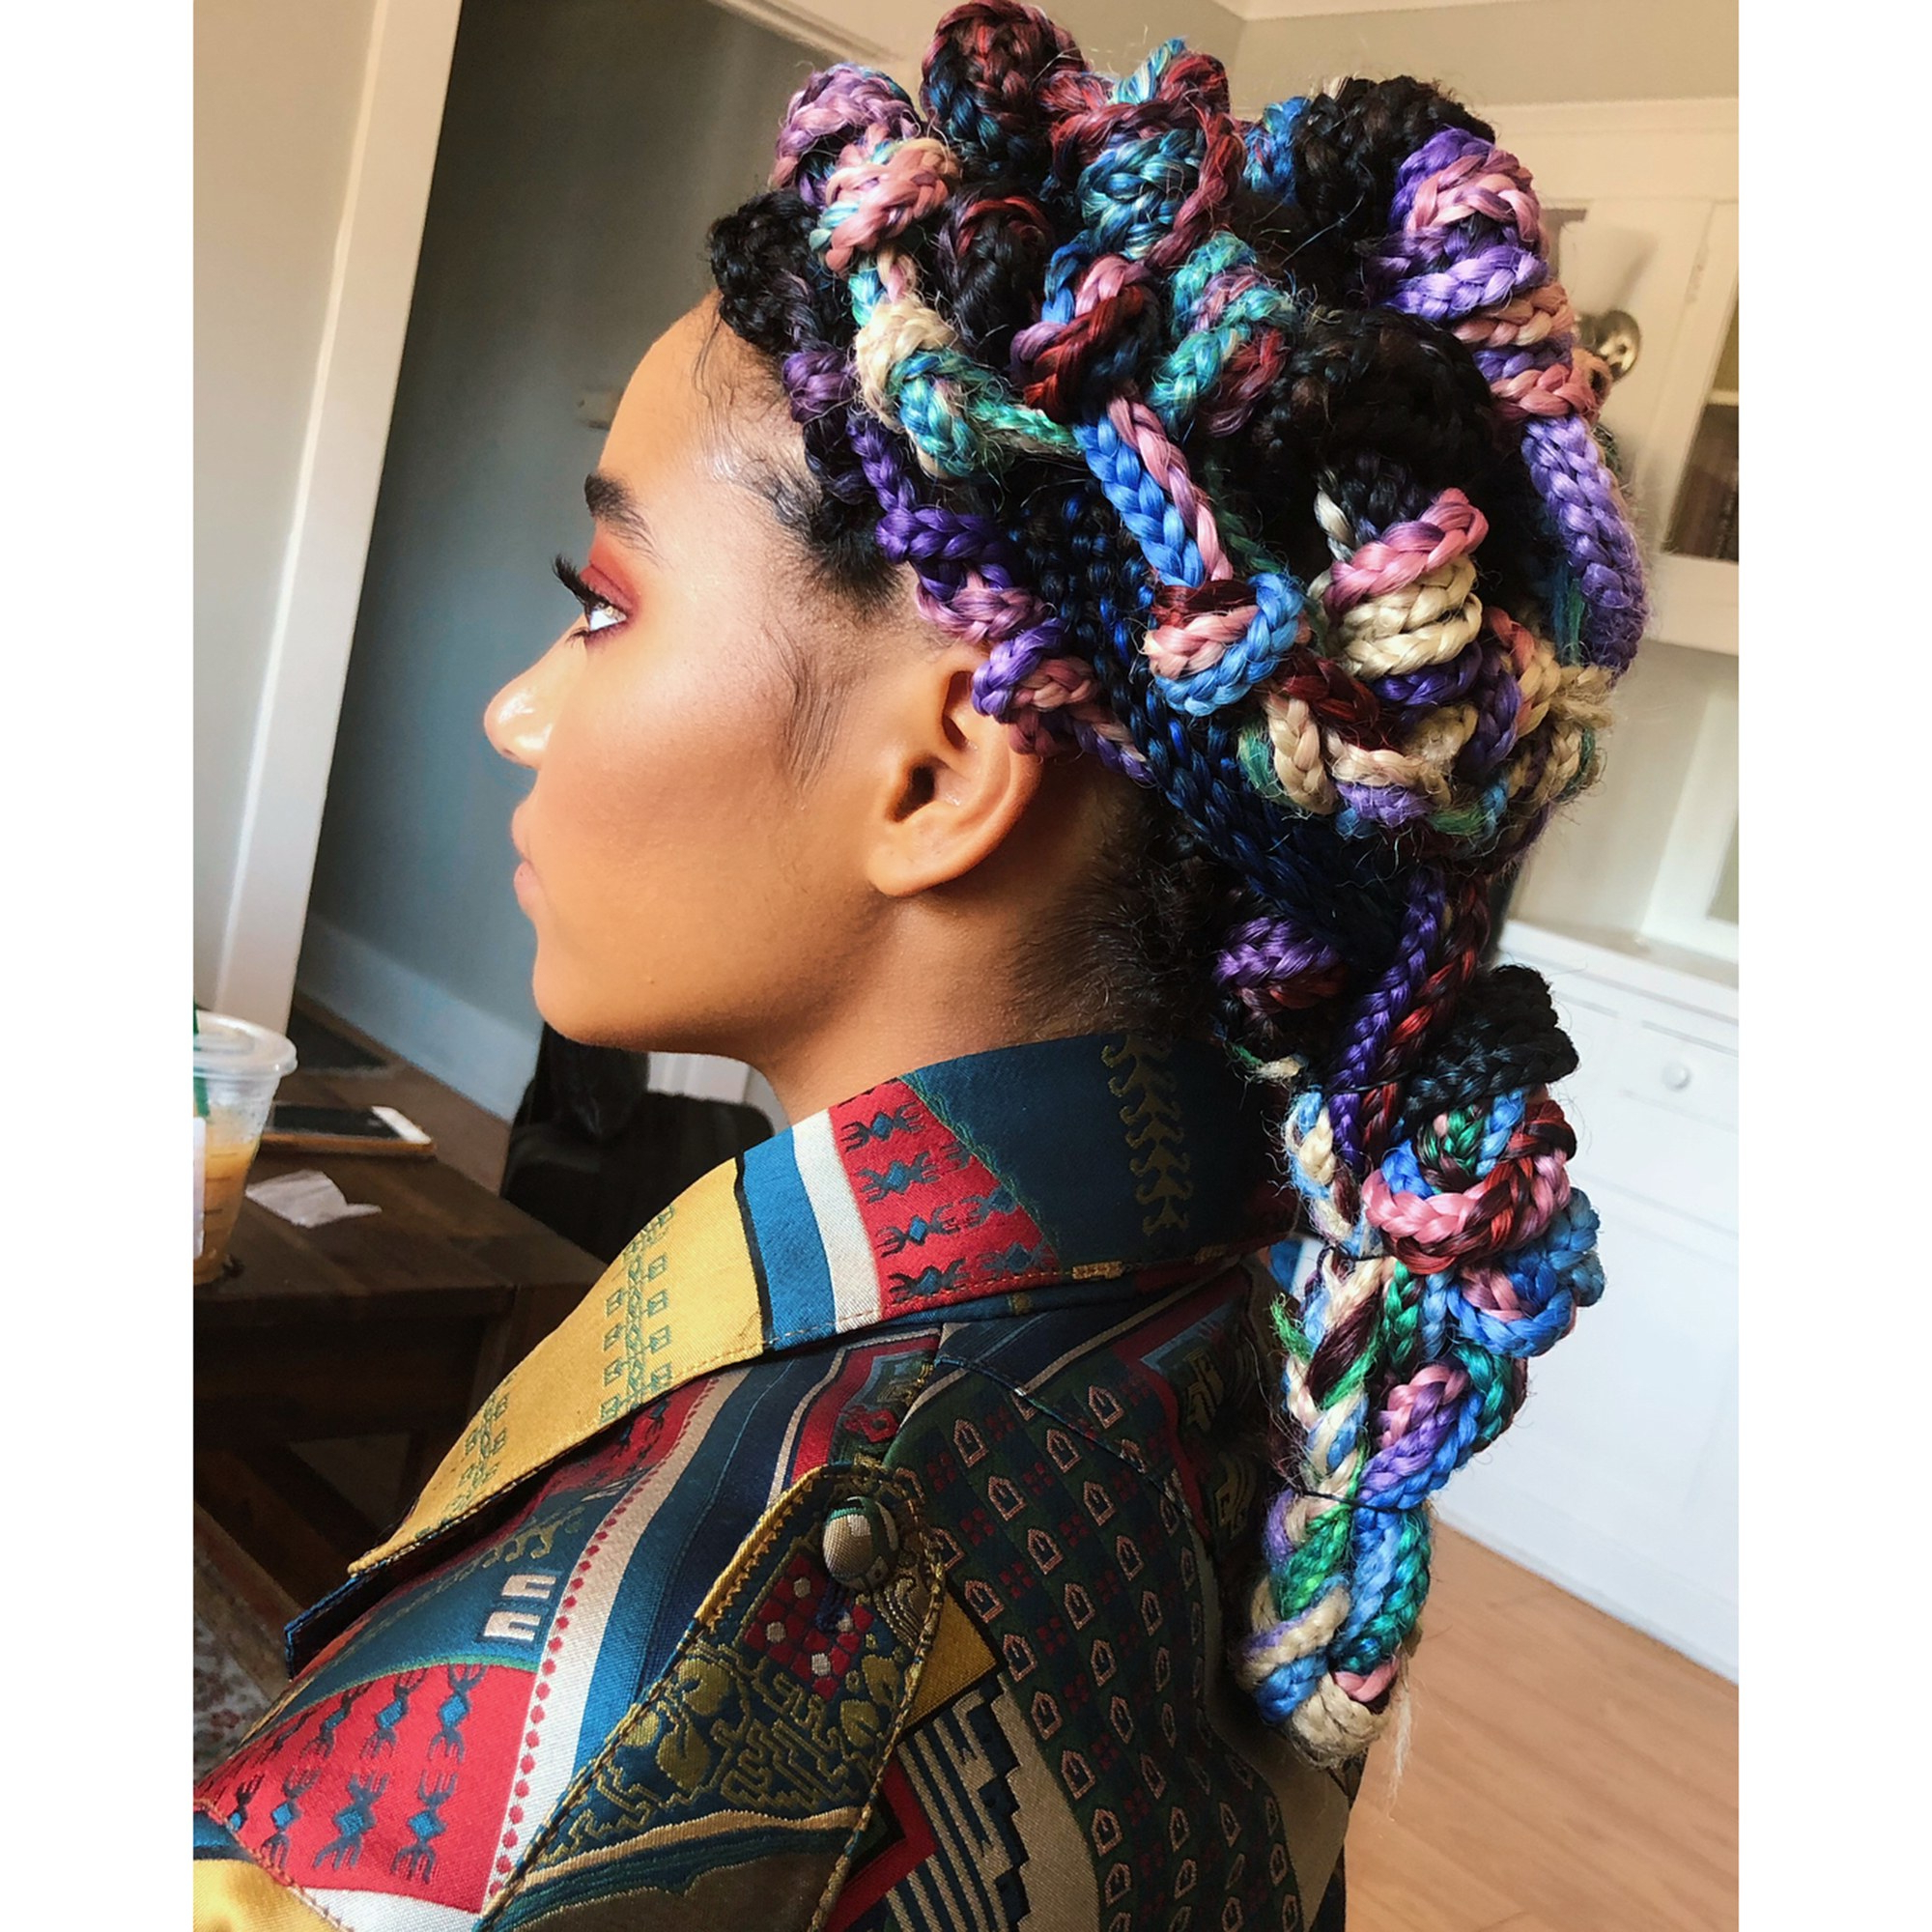 21 Dope Box Braids Hairstyles To Try (View 3 of 20)